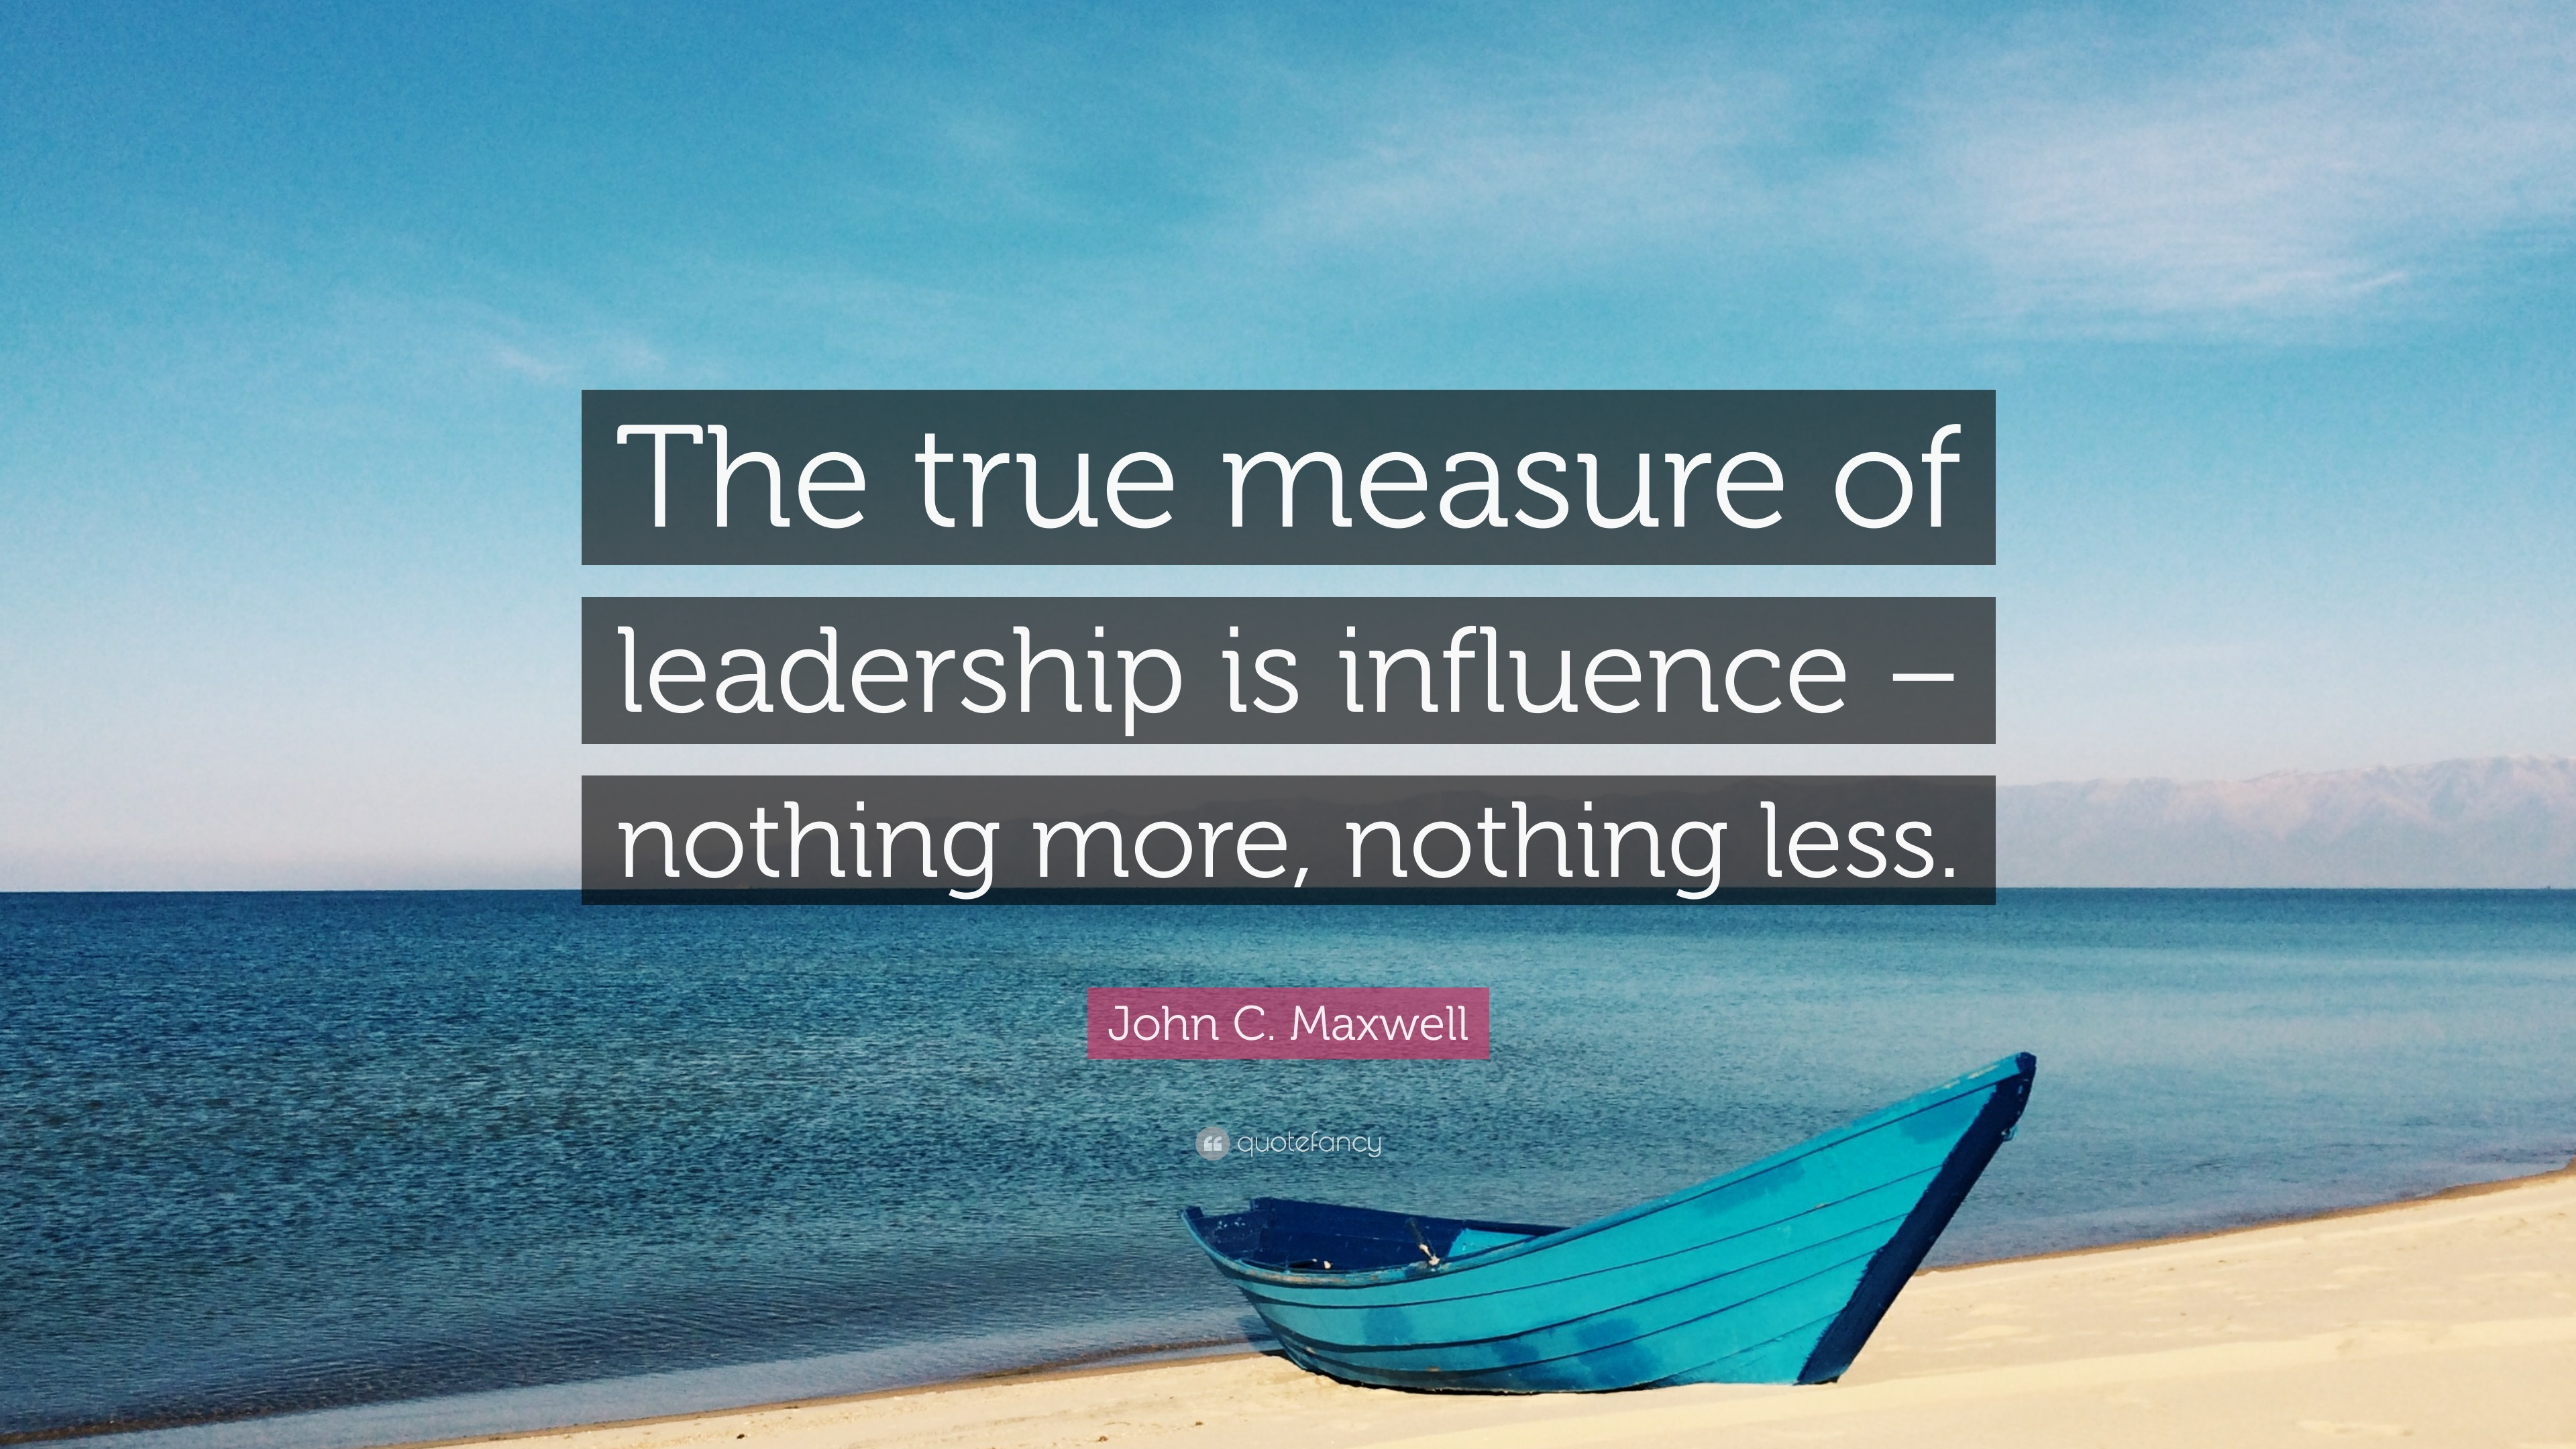 an essay on the true measure of a leader and leadership Moral leaders possess at least five key characteristics that enable them to be   true moral imagination can reveal shared aspirations and yearnings  the poor  — requires new ways of thinking, interacting and measuring  i love this essay  — it conveys a really important point: moral leadership usually.